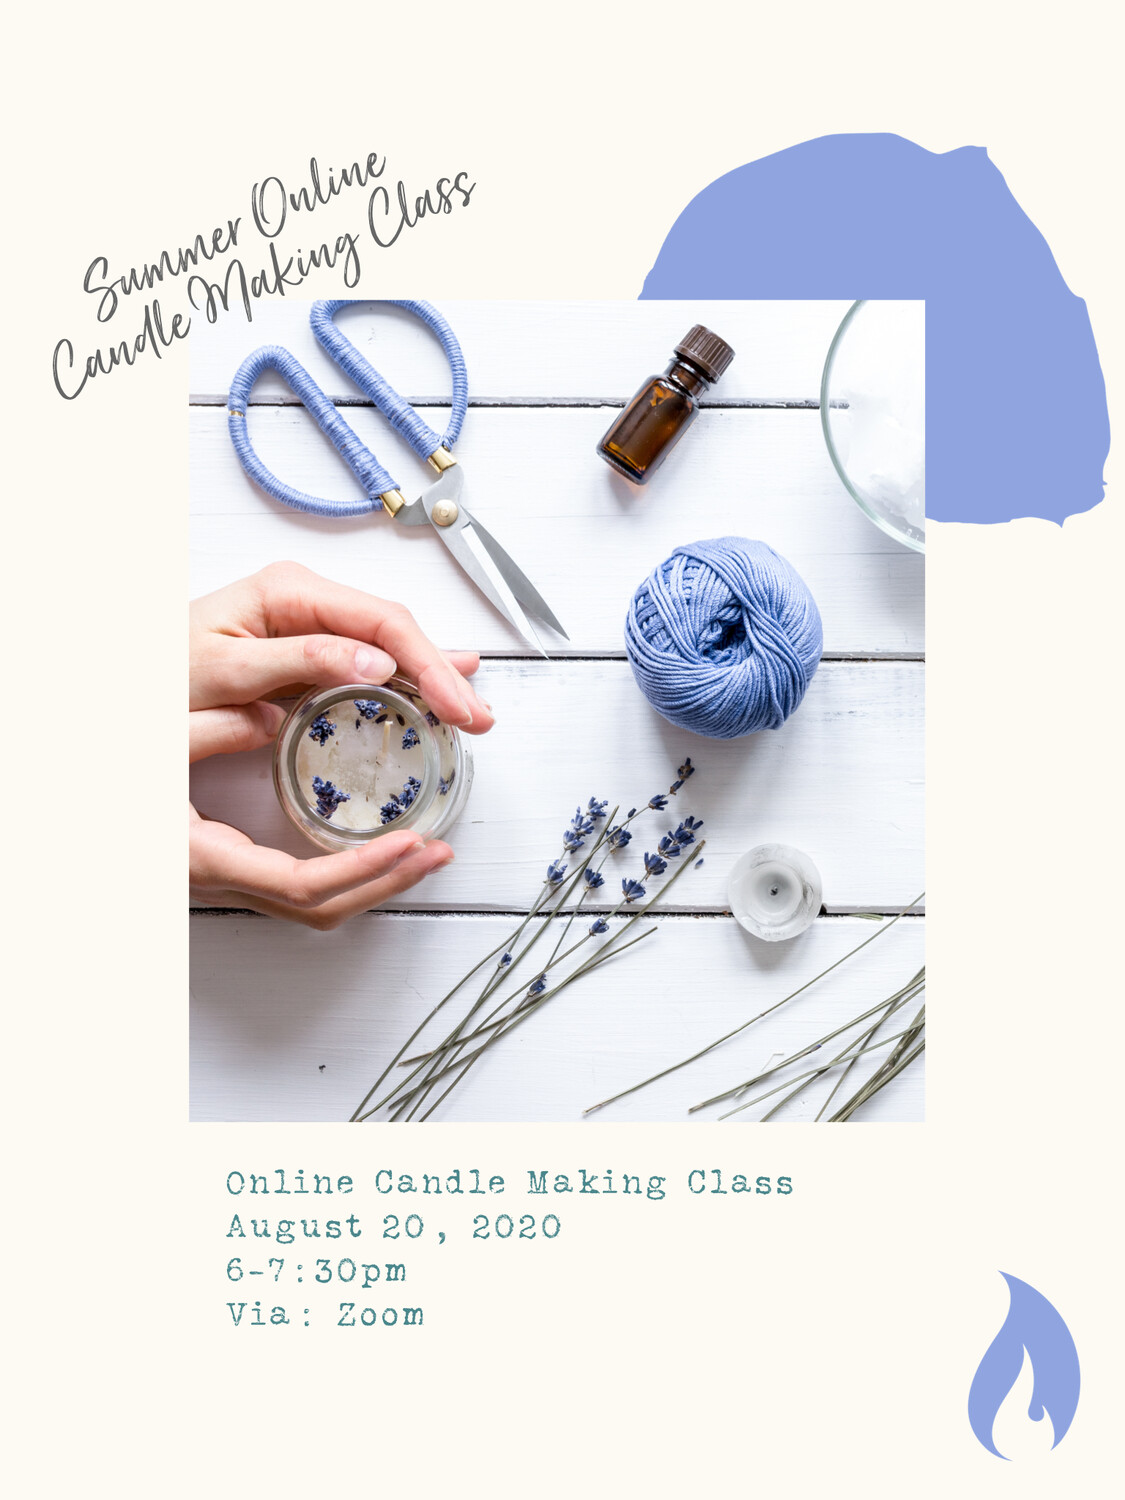 8/20/20 Group - Online Candle Making Class